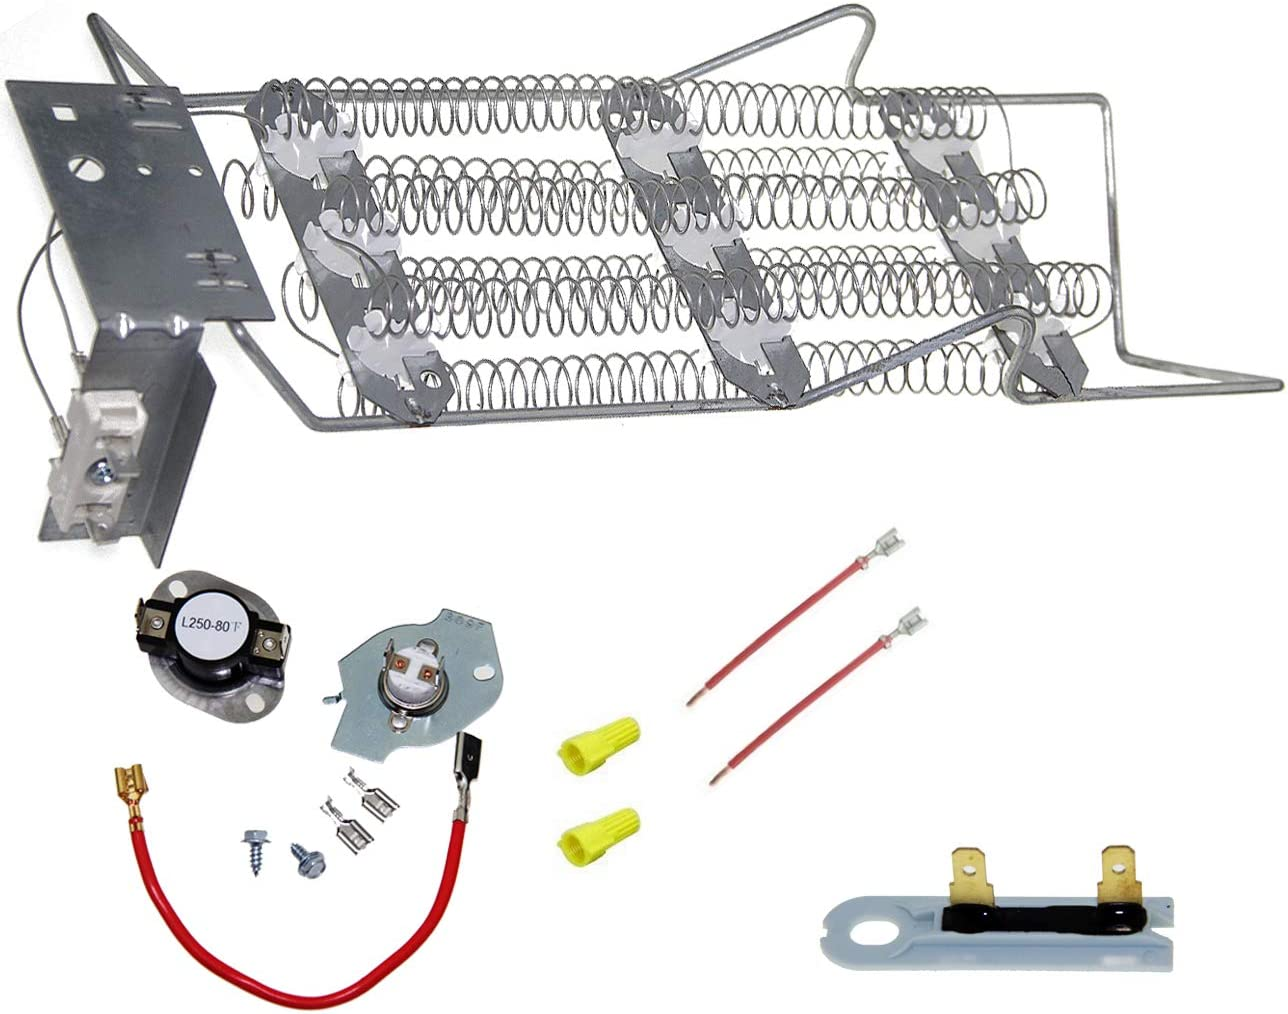 4391960 Dryer Heating Element & 279816 Thermostat kit & 3392519 Thermal Fuse, Compatible with Kenmore WP4391960